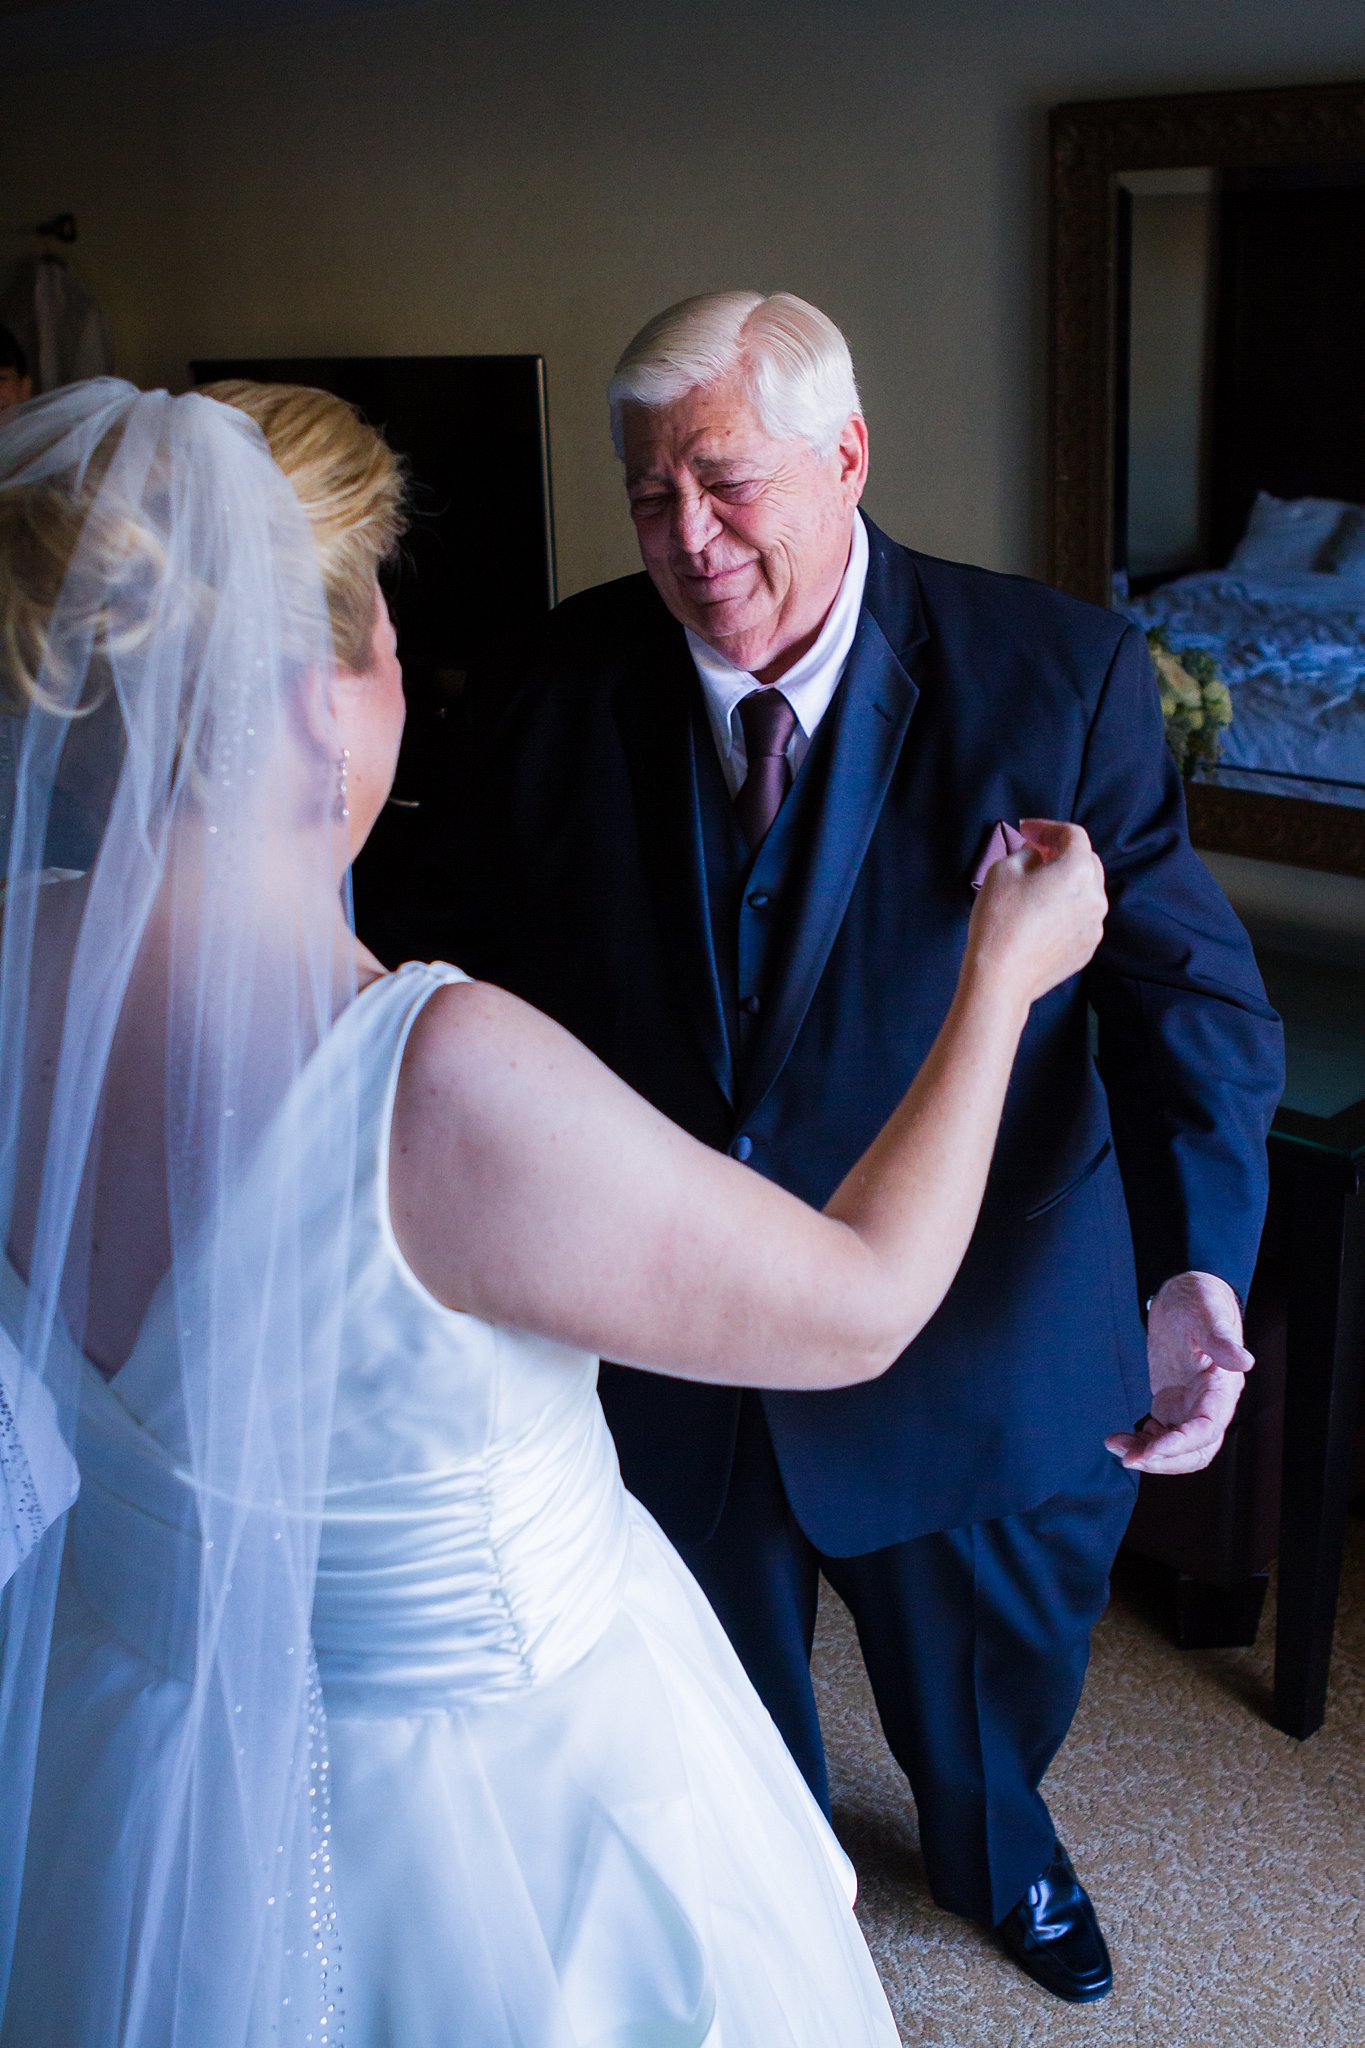 Emotional wedding photos. Bride does a first look with her elderly father and he starts to cry.